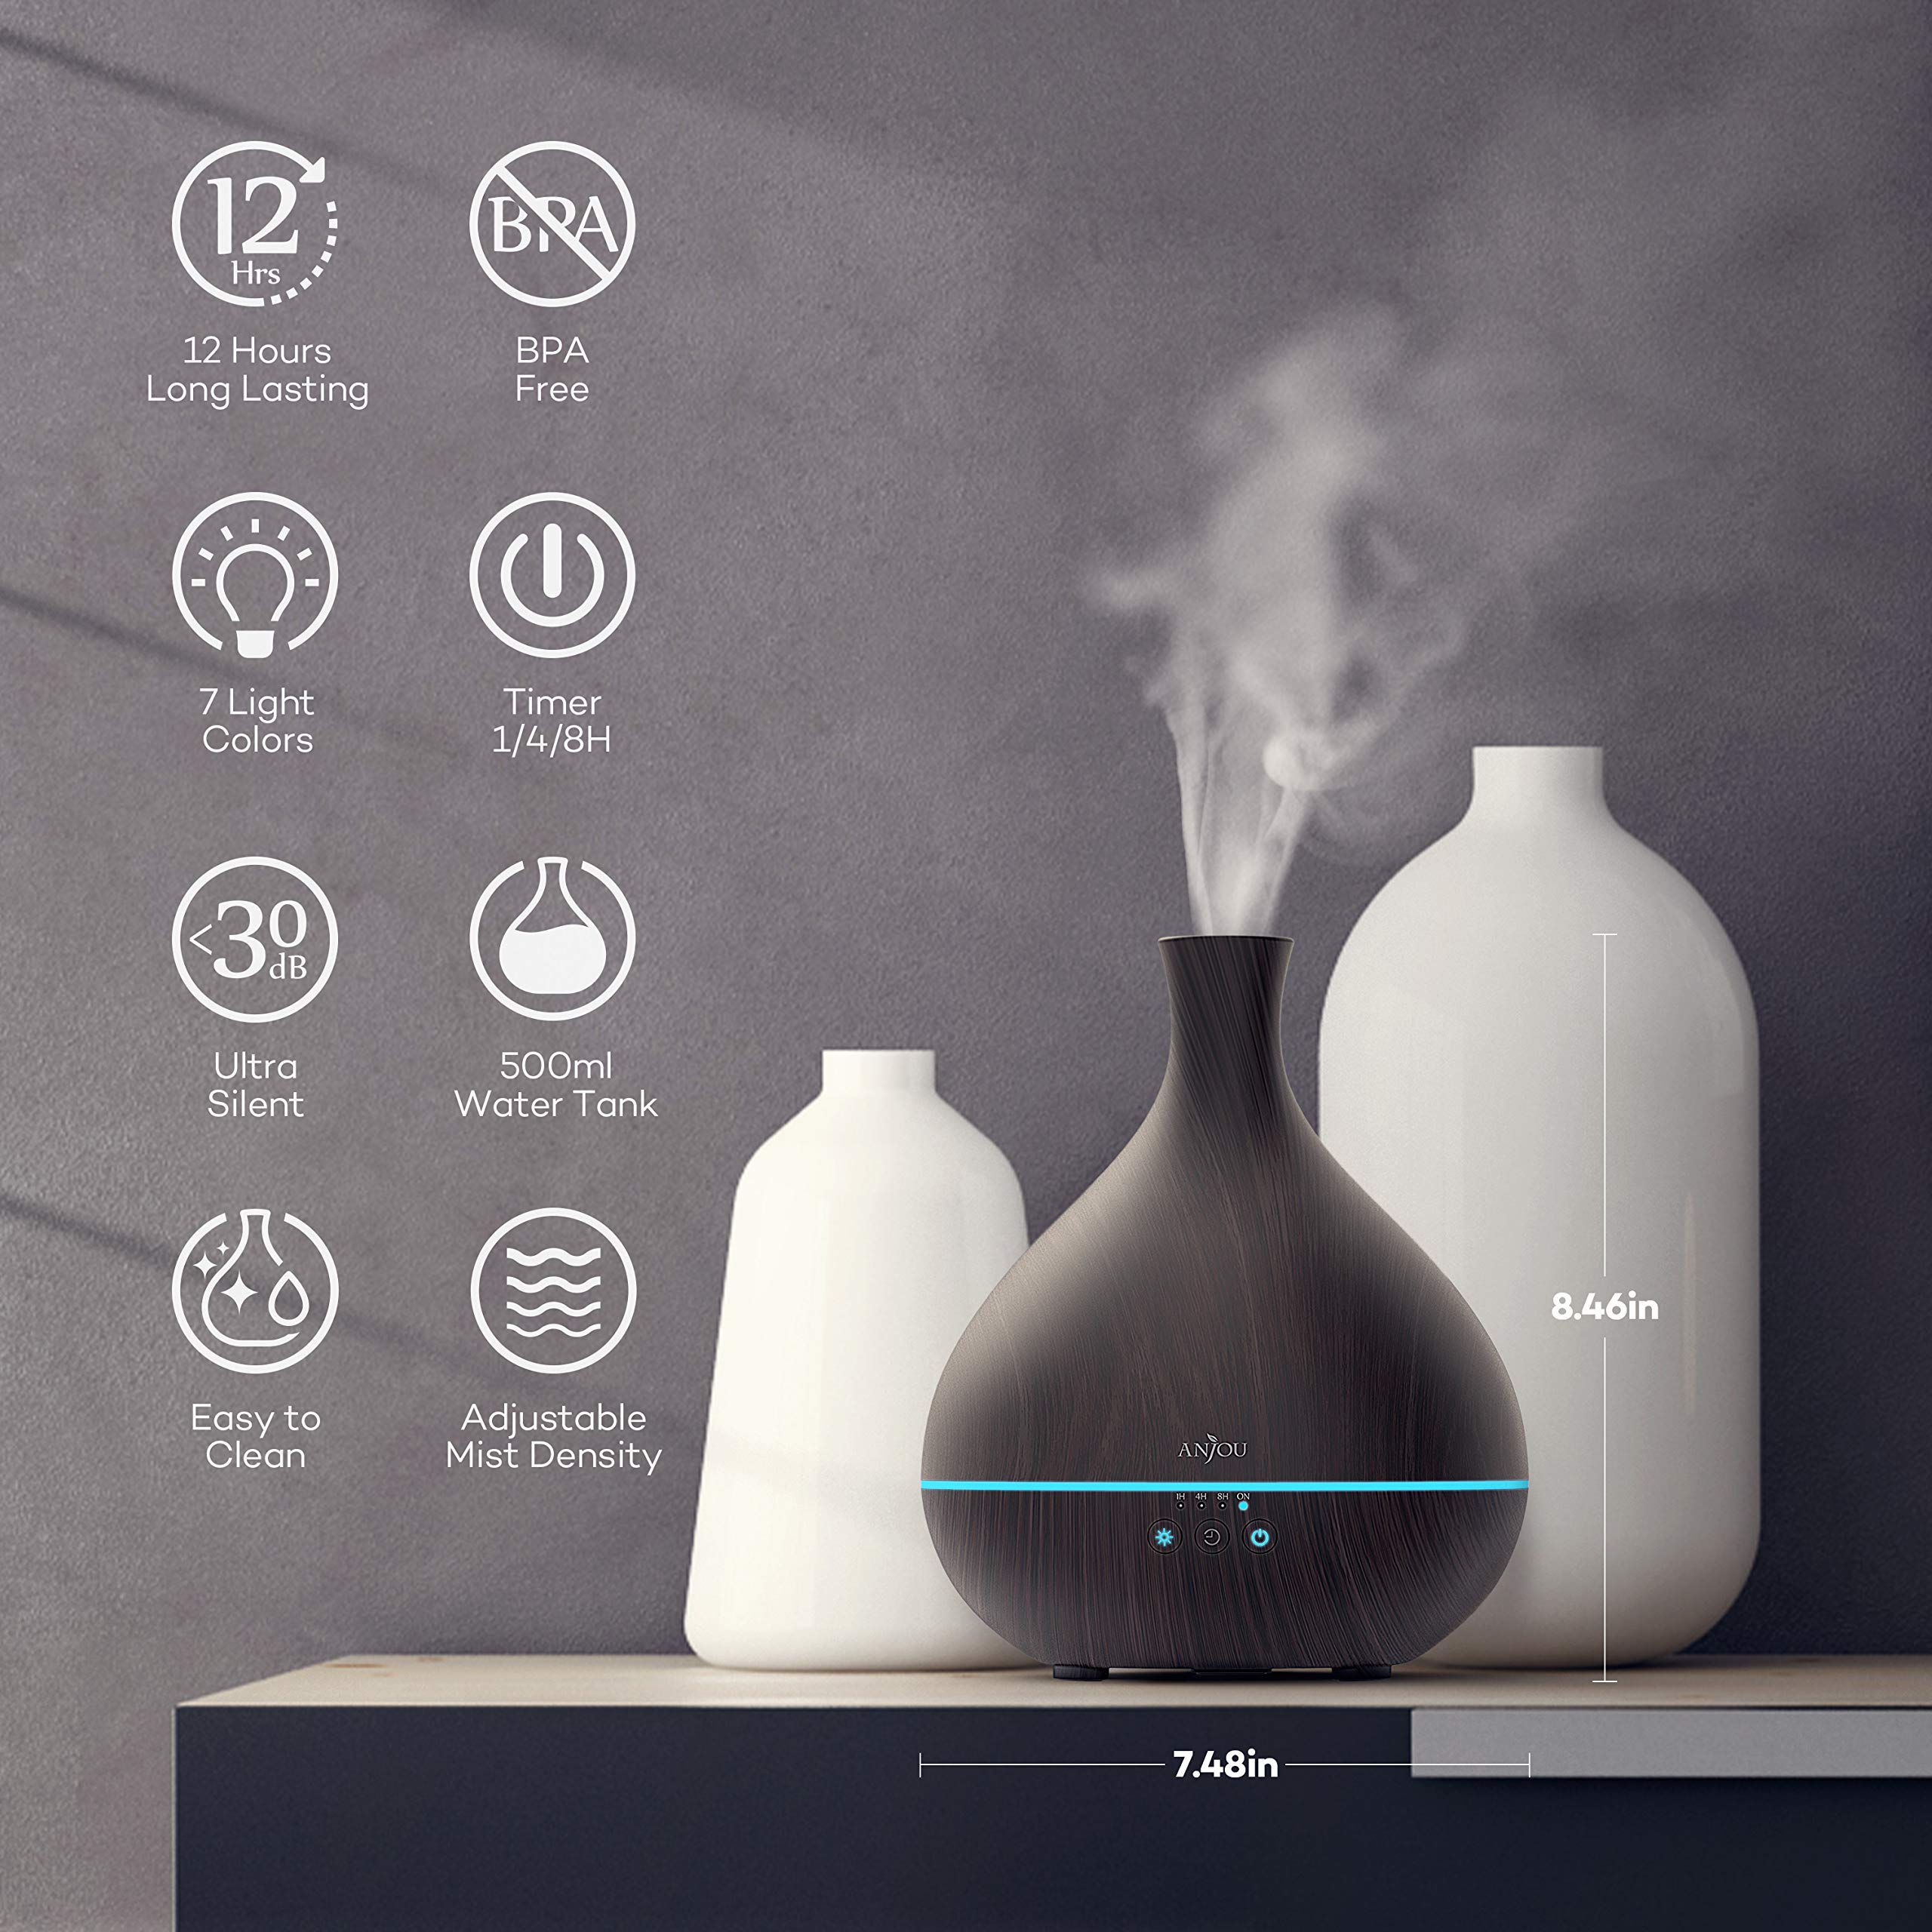 Essential Oil Diffuser,Anjou 500ml Cool Mist Humidifier,One Fill for 12hrs Consistent Scent & Aromatherapy, World's First Diffuser with Patented Oil Flow System for Home & Office